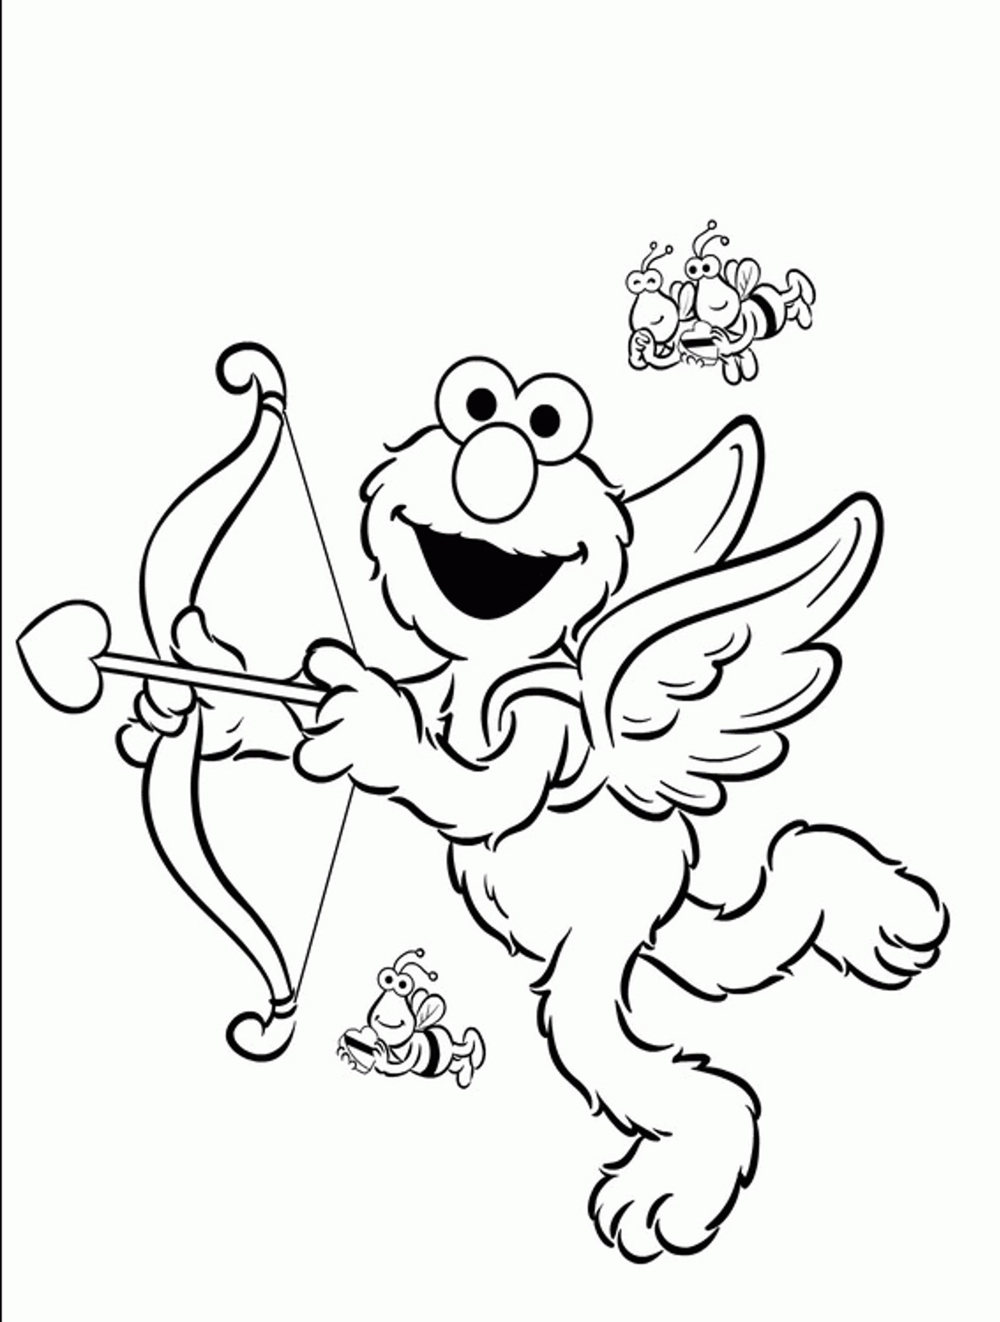 Print & Download - Elmo Coloring Pages for Children\'s Home ...